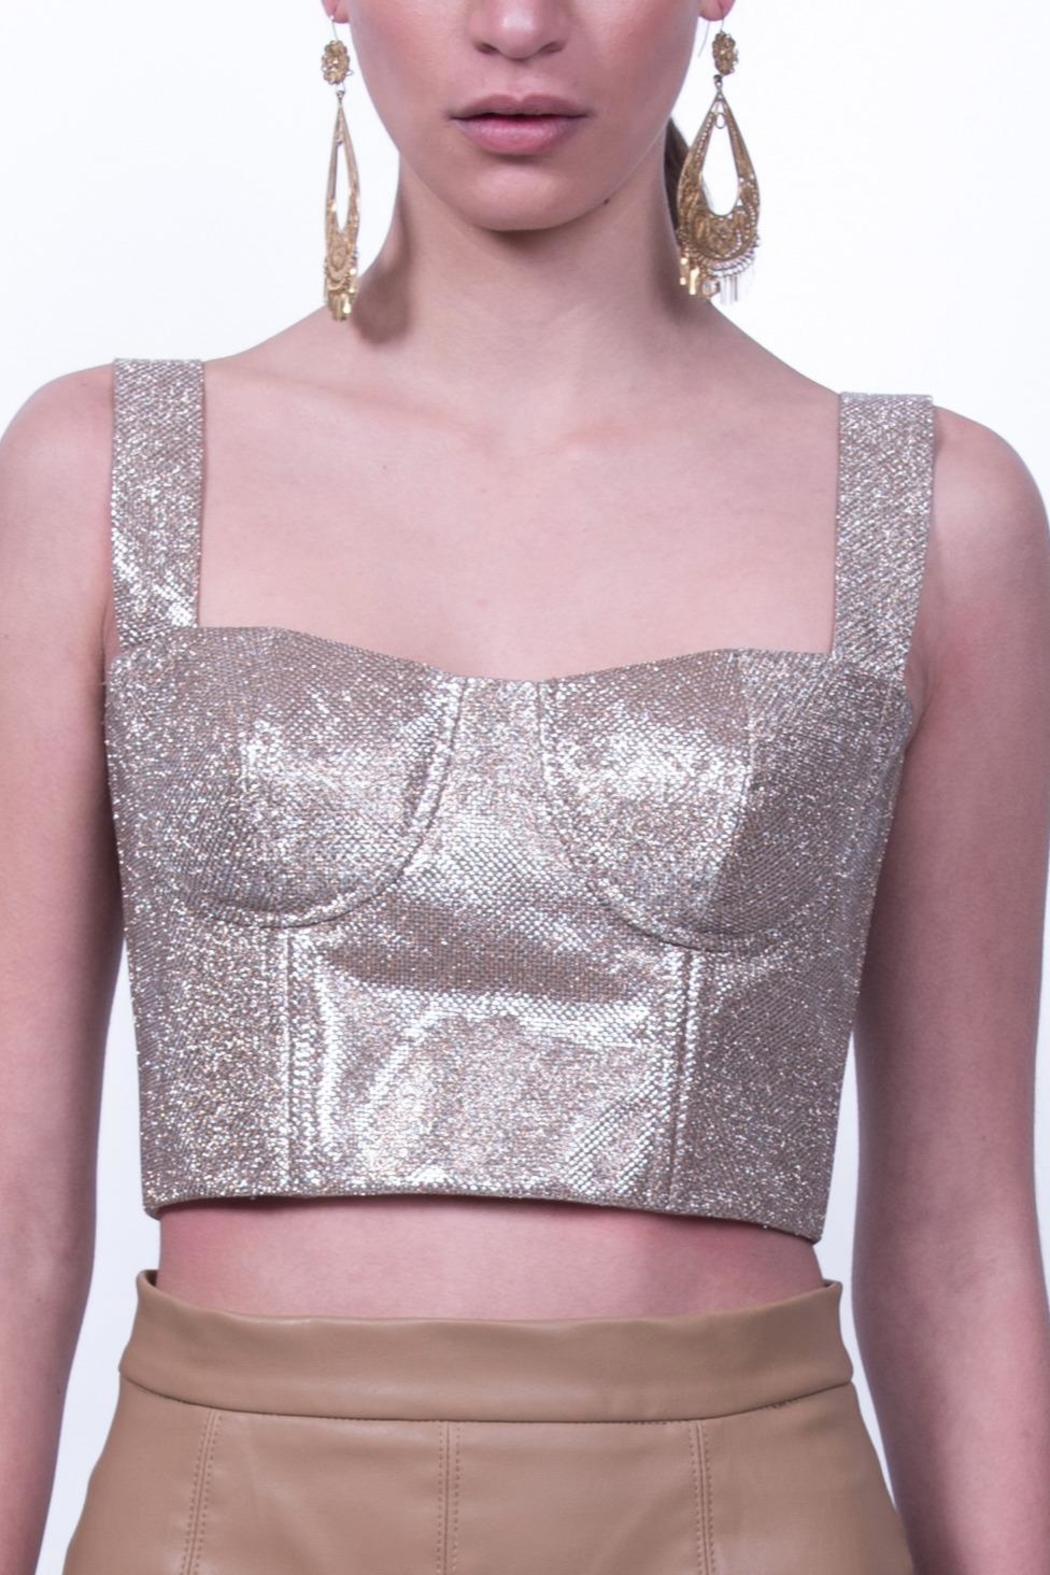 f4445c7670b Viesca y Viesca Sparkly Bustier from Mexico — Shoptiques